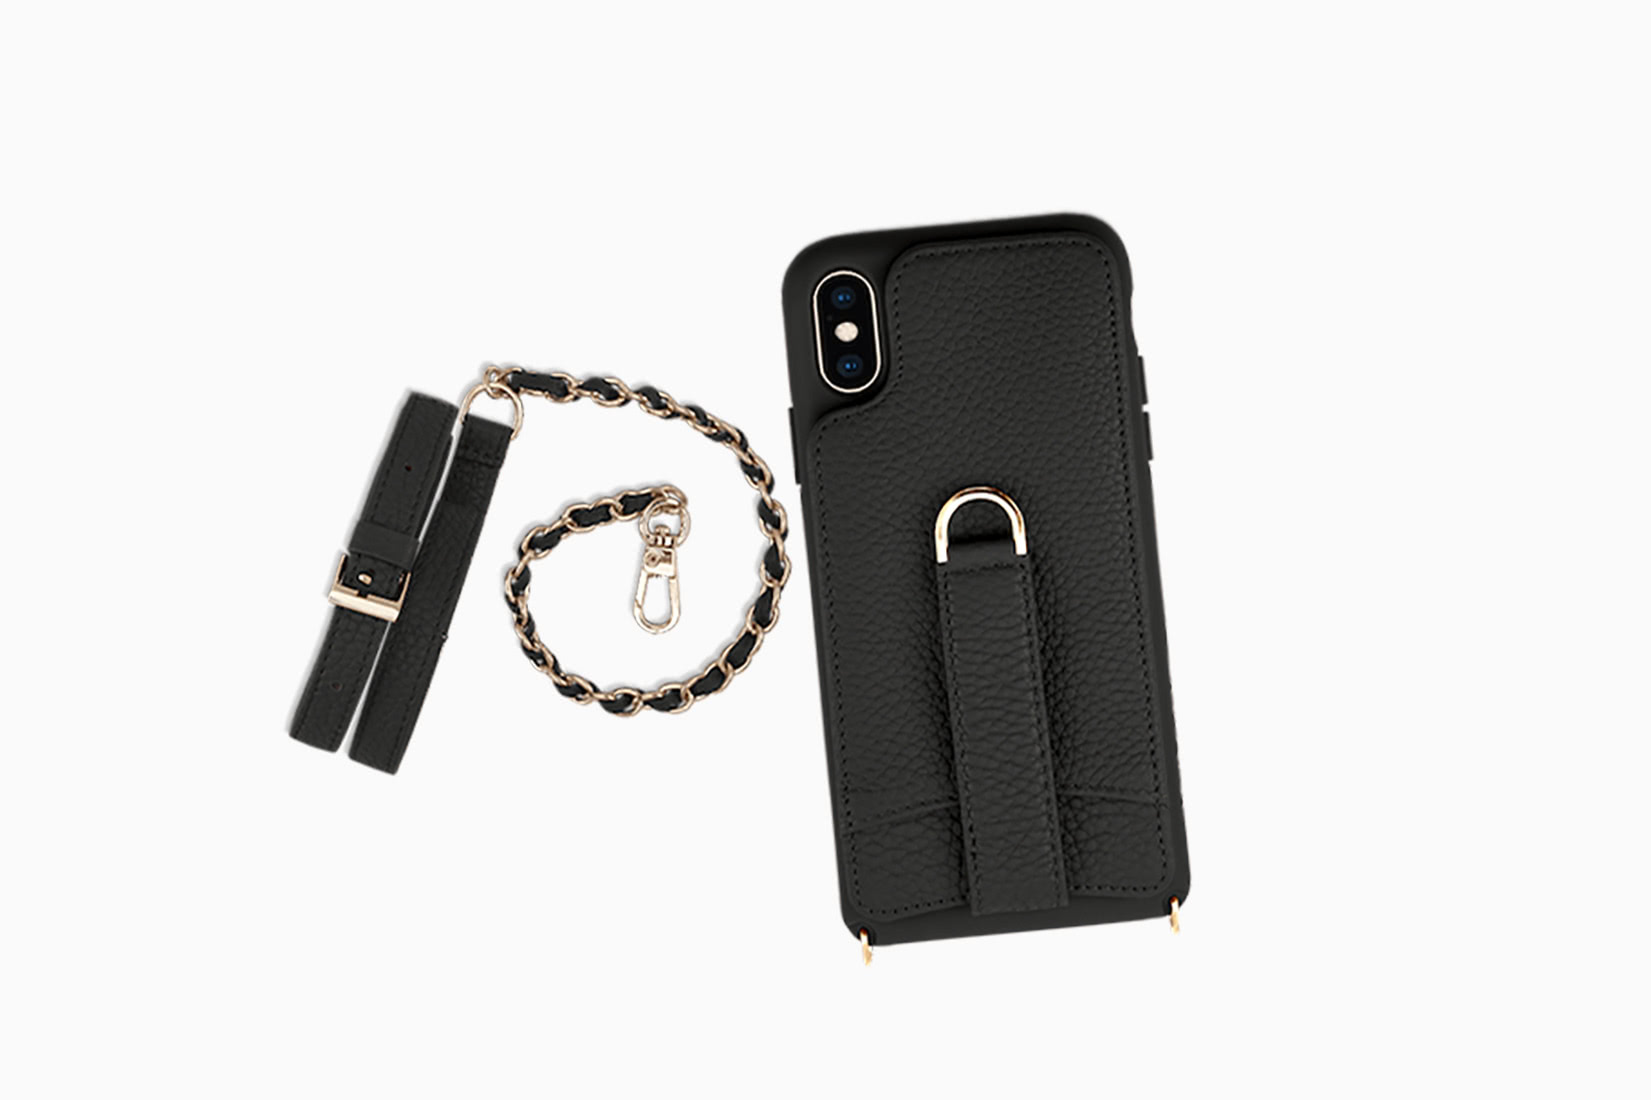 best iphone case luxury leather vaultskin victoria review - Luxe Digital